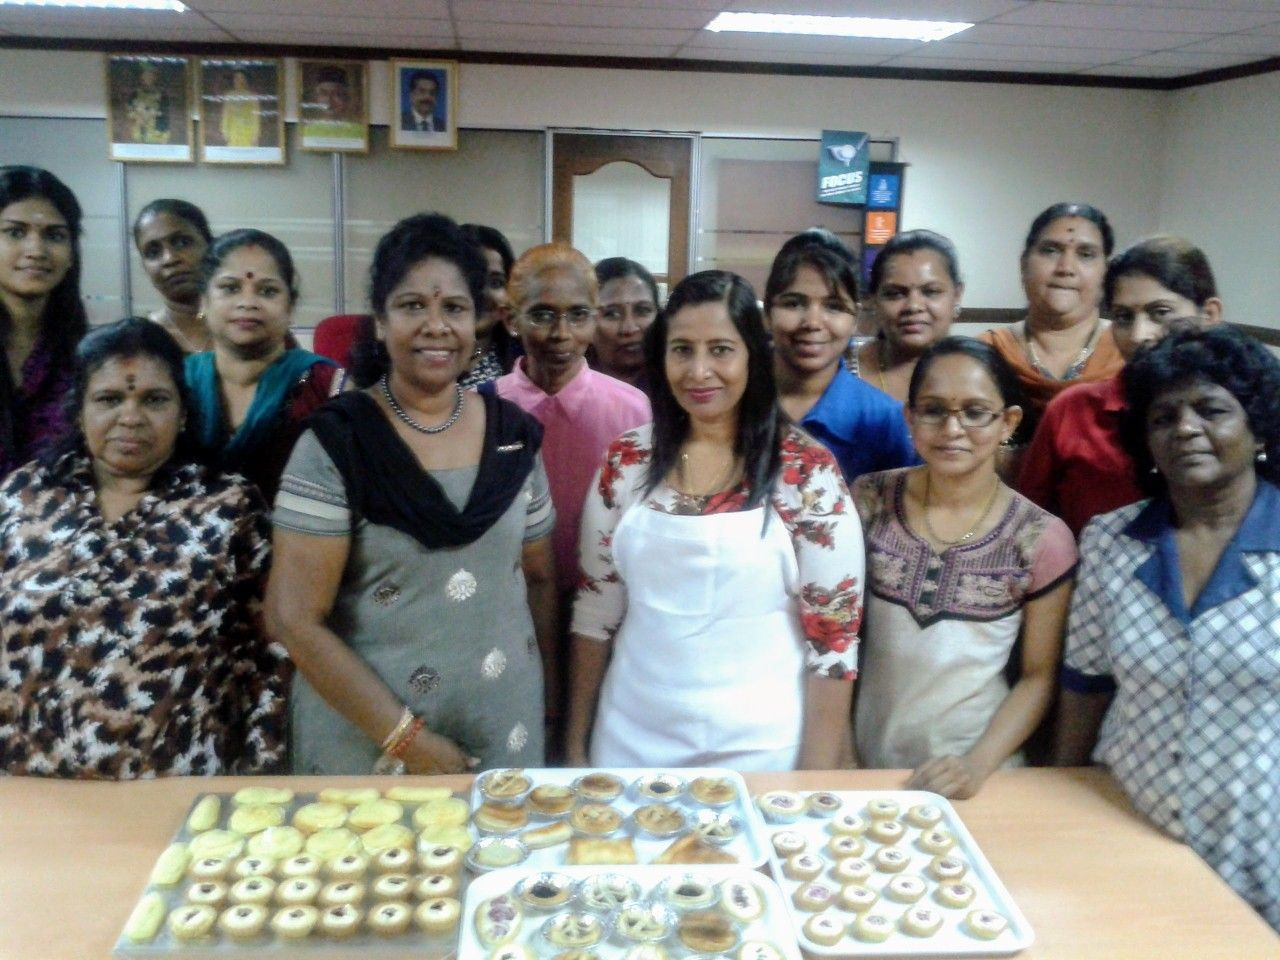 Ezybake has conducted 2 days baking classes for 20